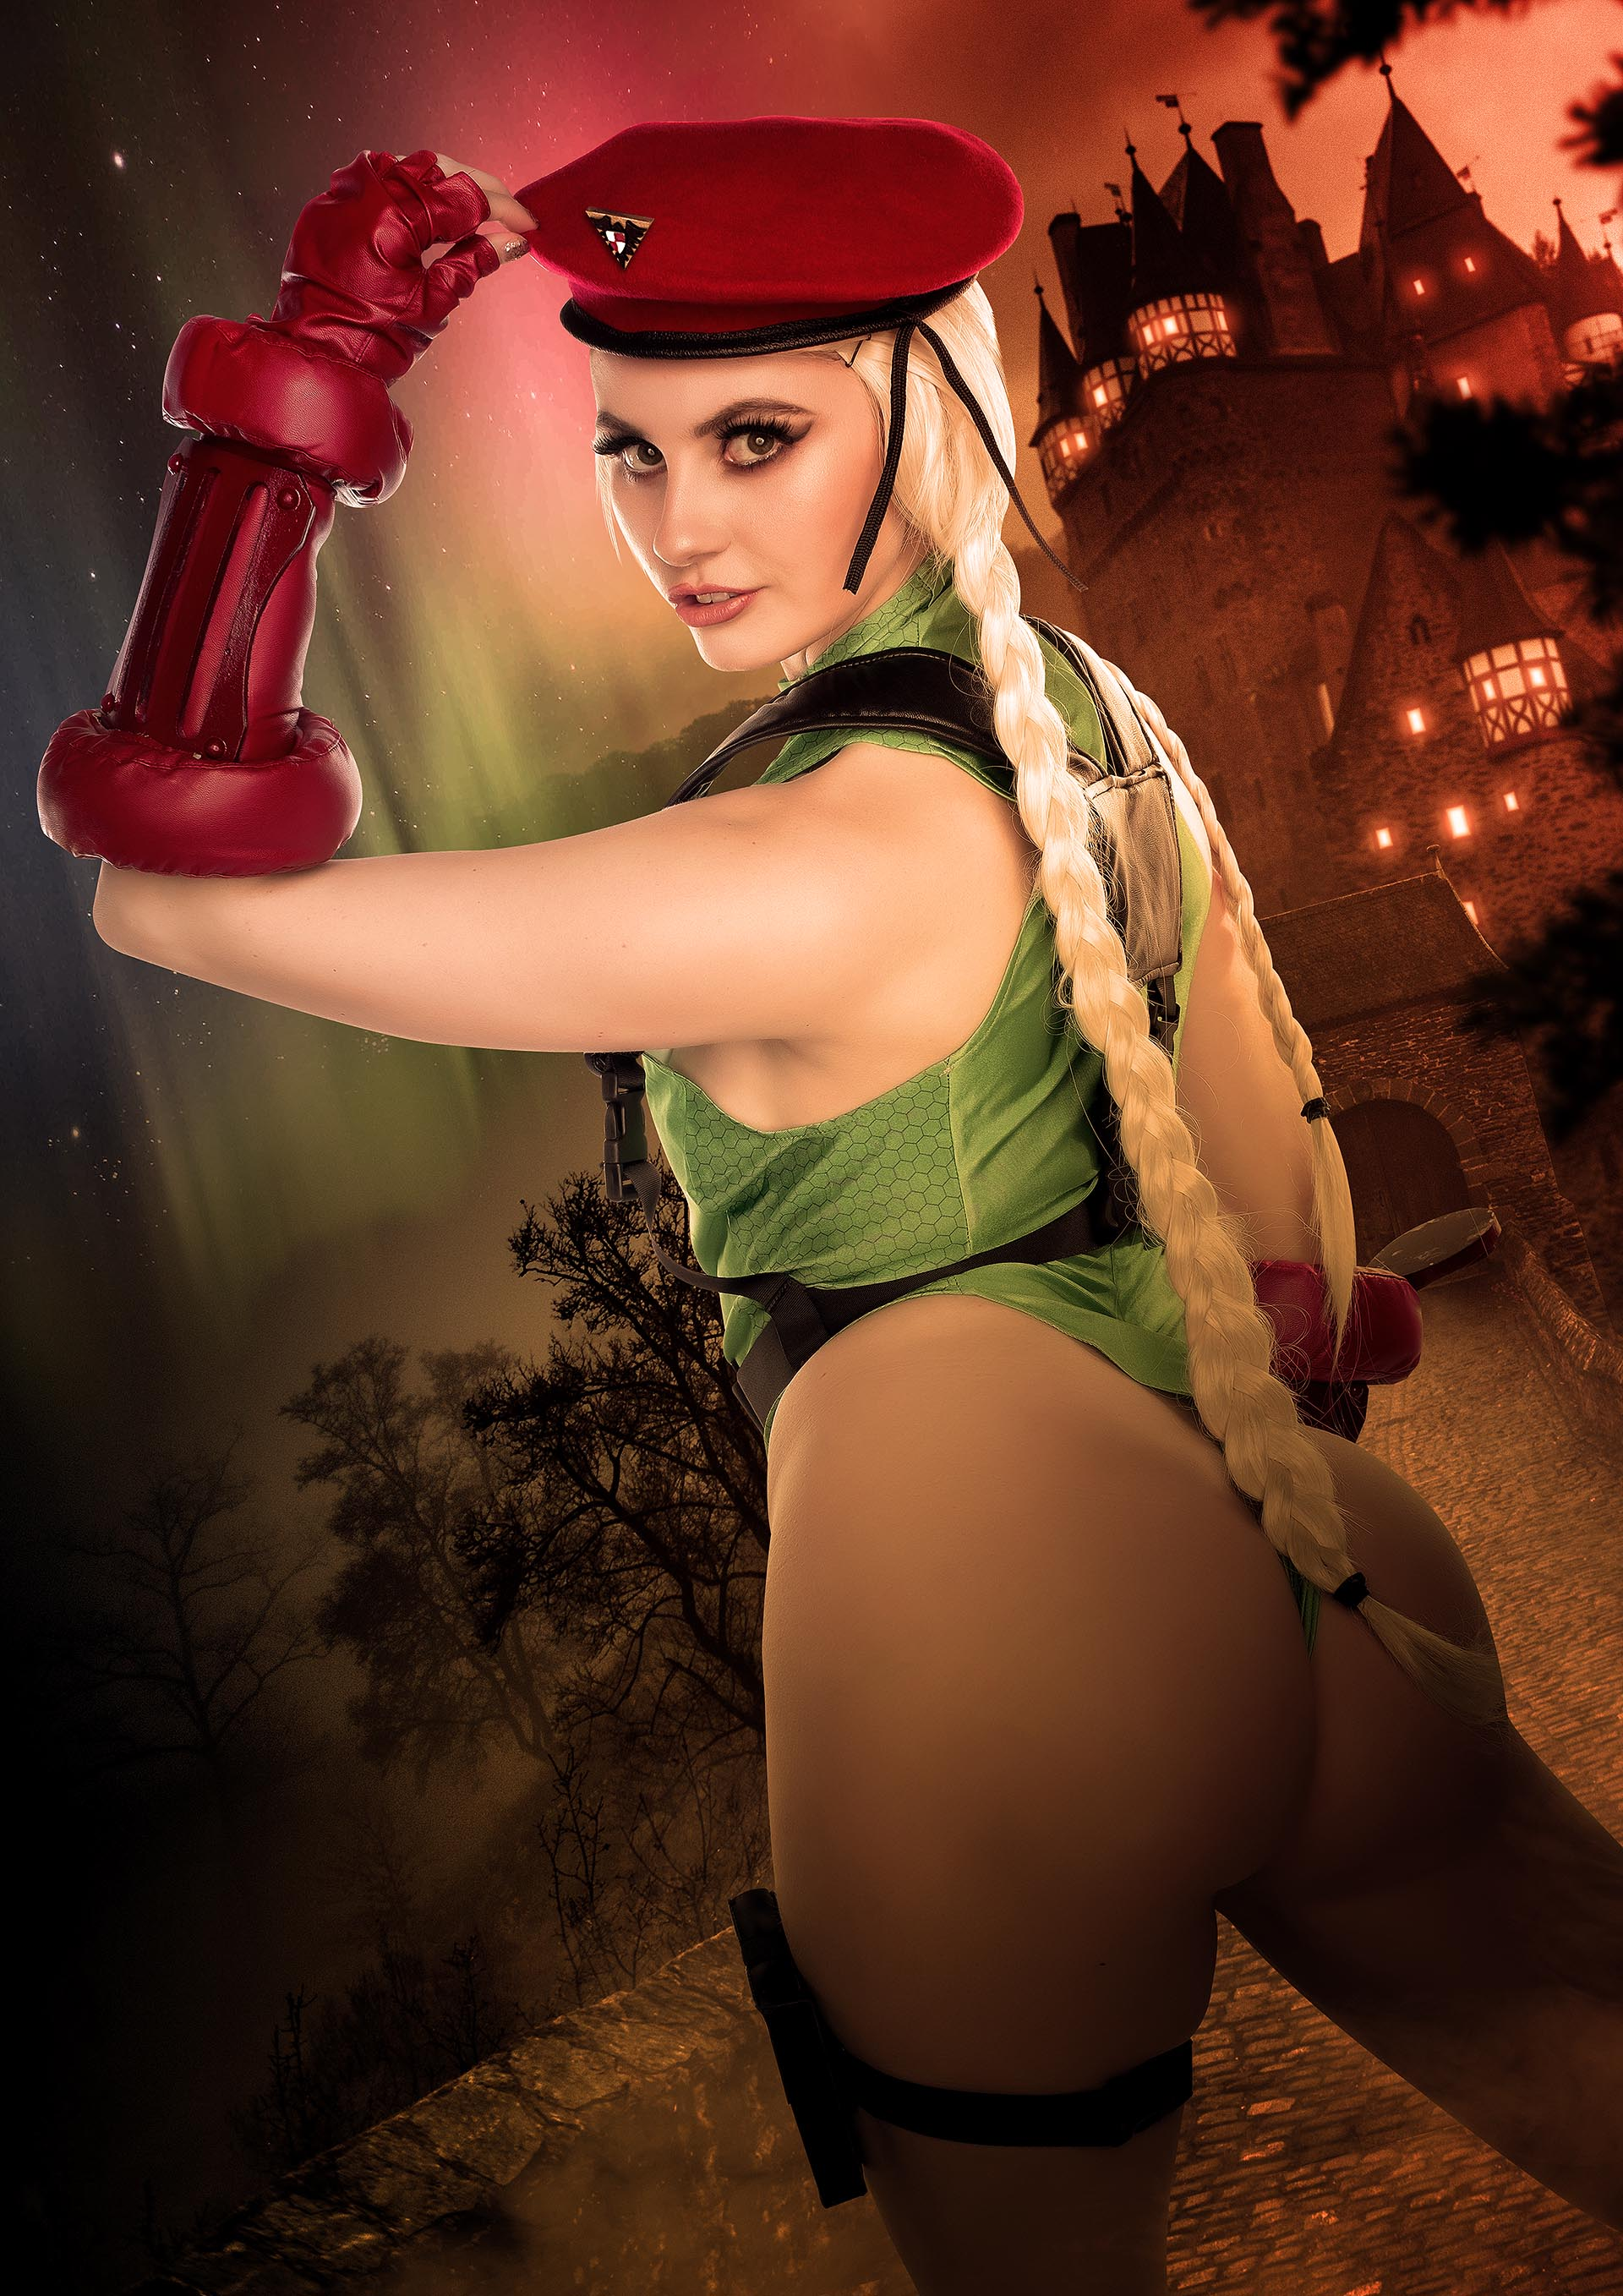 BrookLogan_Cammy_StreetFighterV2019.jpg